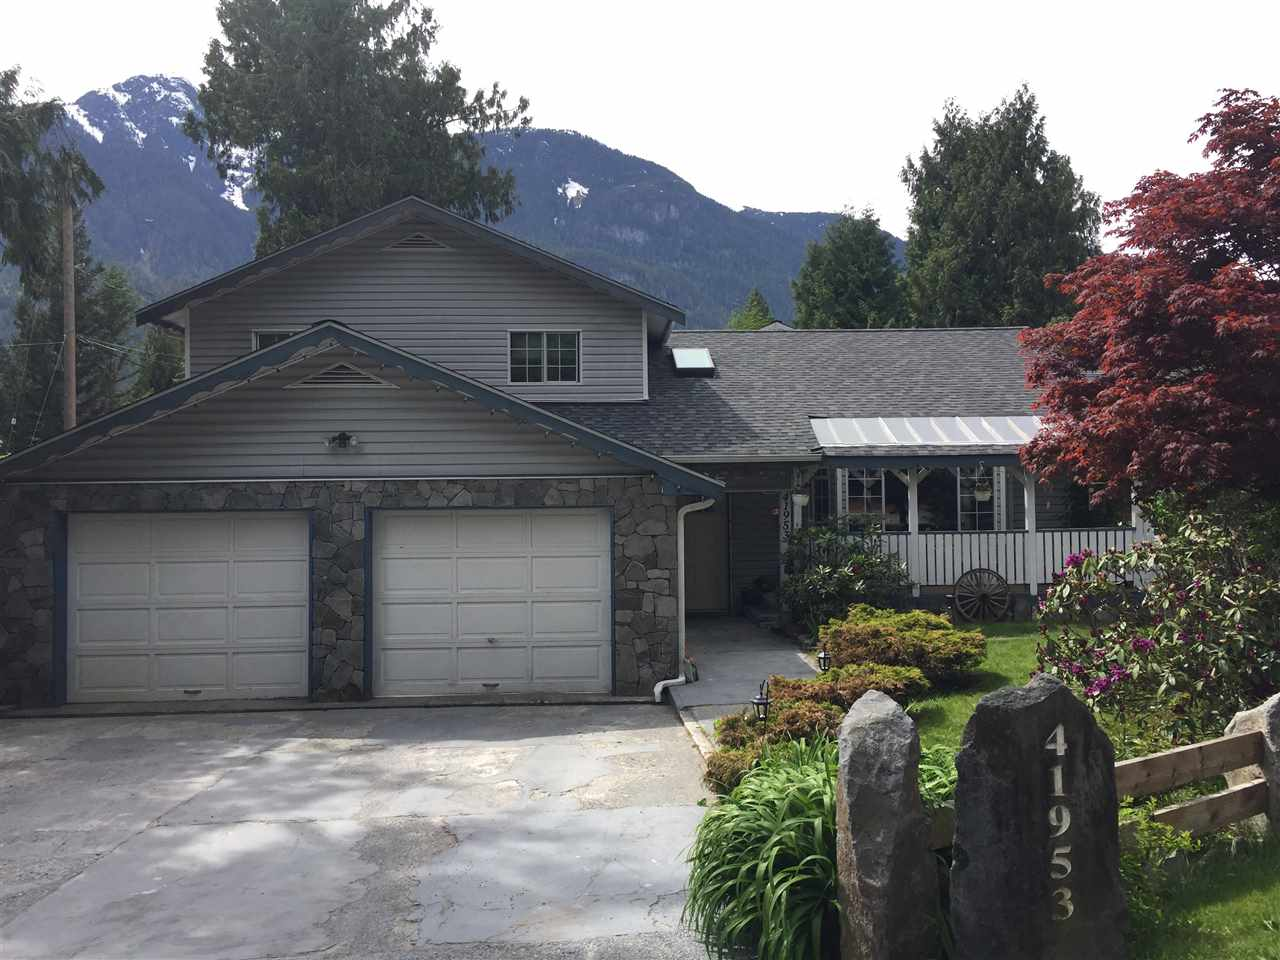 """Located in beautiful Brackendale, Squamish this 4 bed, 3 bath home is perfect for any busy and active family. Owner occupied since construction and meticulously maintained - the home sits on a duplex zoned corner lot that is steps away from an elementary and high school. The home is very open and inviting with large living and family rooms that is perfect for entertaining. Large Master bedroom with his and hers closets. Lots of room to play in the backyard with the fantastic deck area, pool, hot tub, pond and fruit trees/bushes. A great opportunity to experience the outdoor recreation of Squamish while living in this charming property where you will instantly feel """"at home"""". Suite potential. Call now for your private showing."""